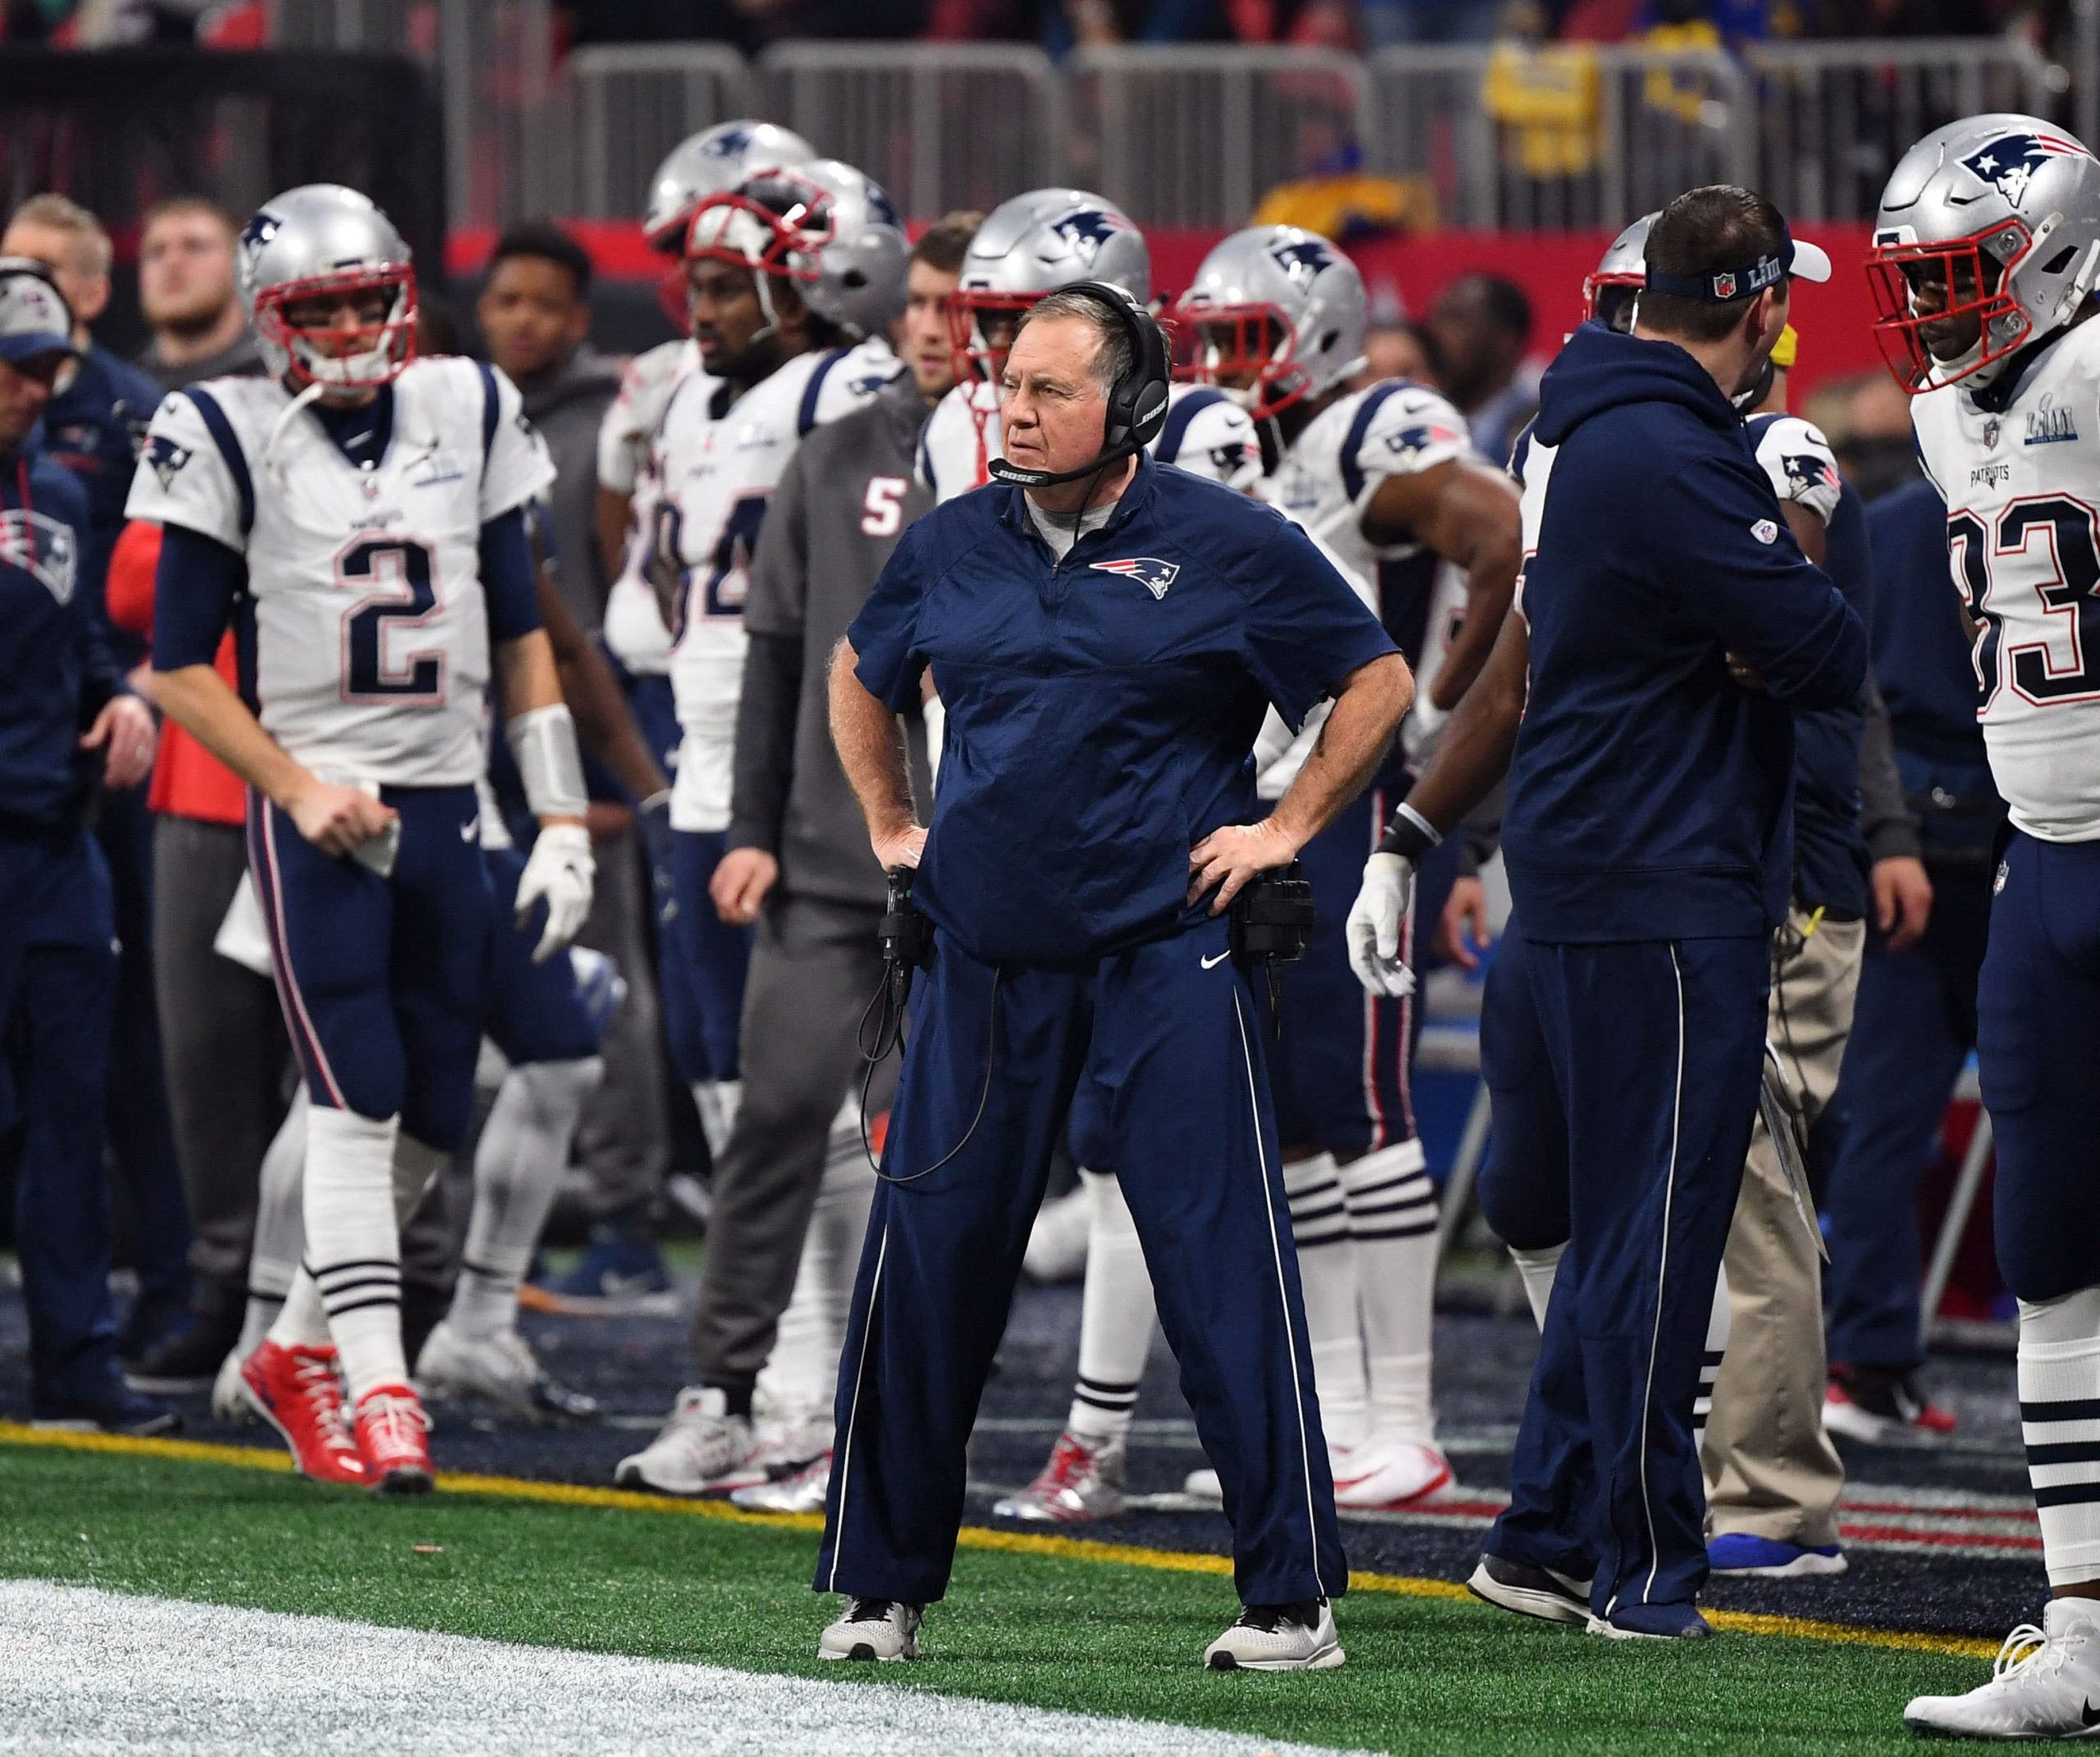 New England Patriots head coach Bill Belichick on the sidelines during the fourth quarter against the Los Angeles Rams in Super Bowl LIII at Mercedes-Benz Stadium. parlay